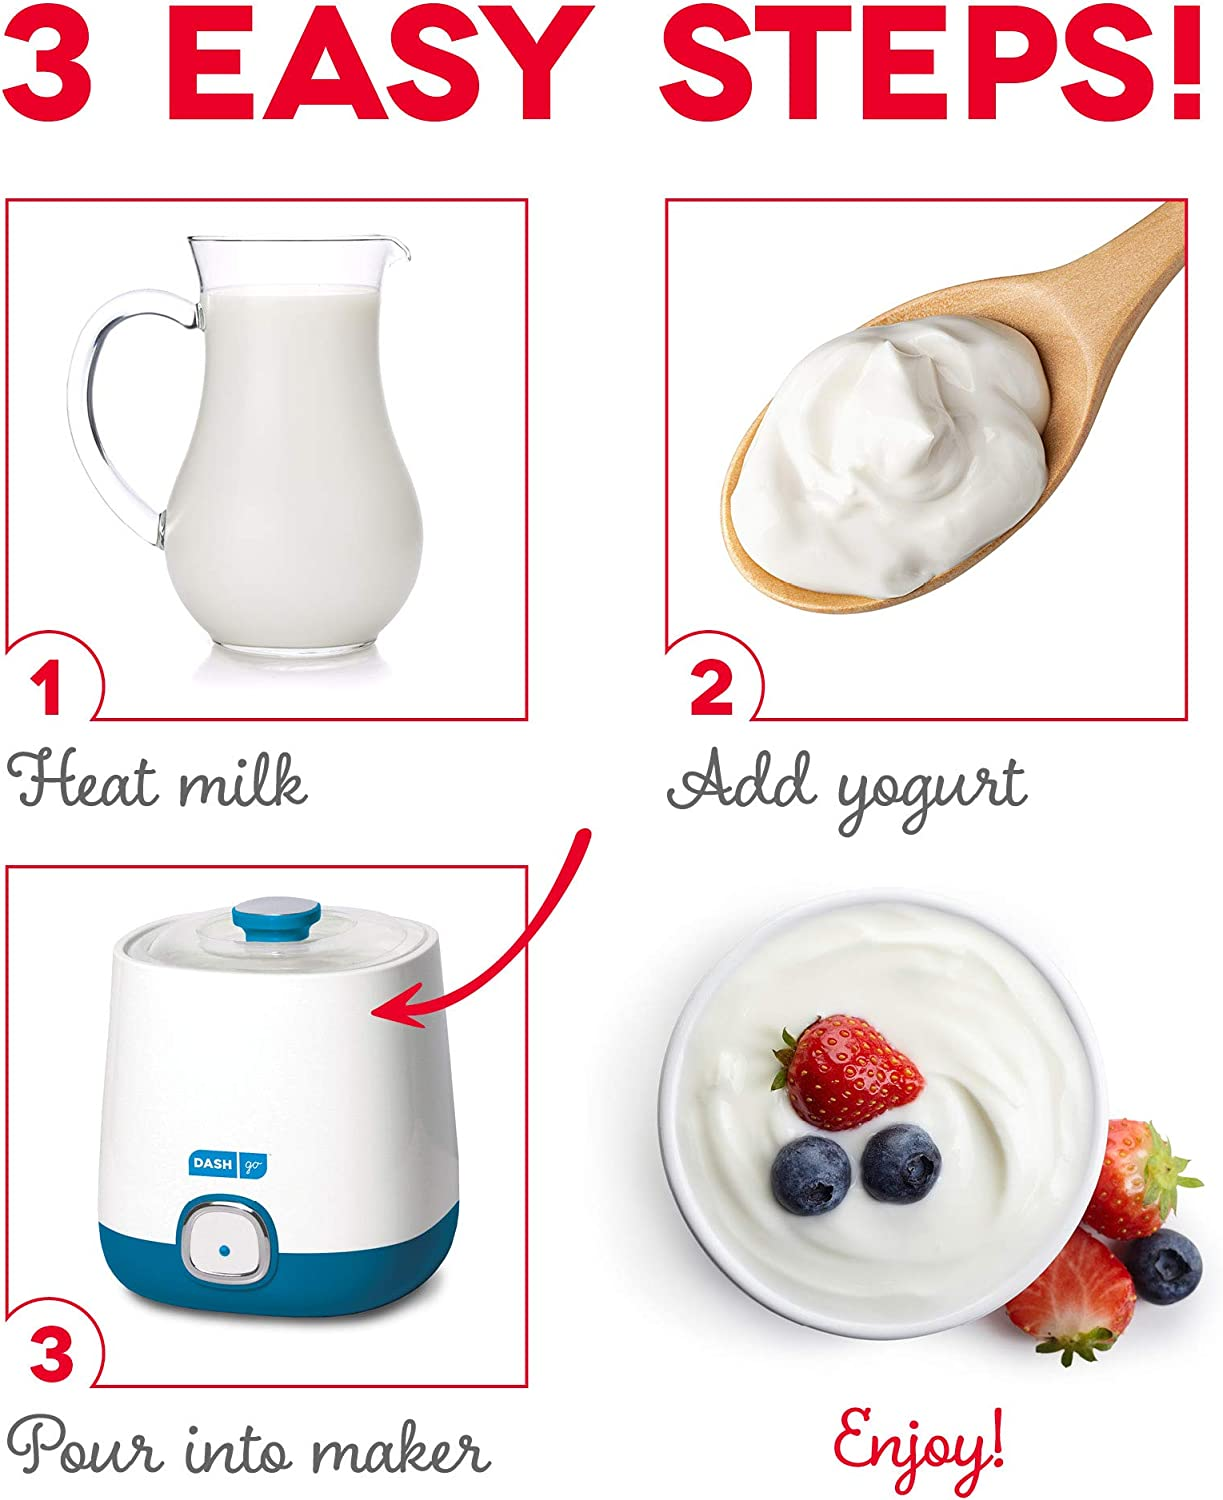 Dash Bulk Yogurt Maker : how does a yogurt maker work?